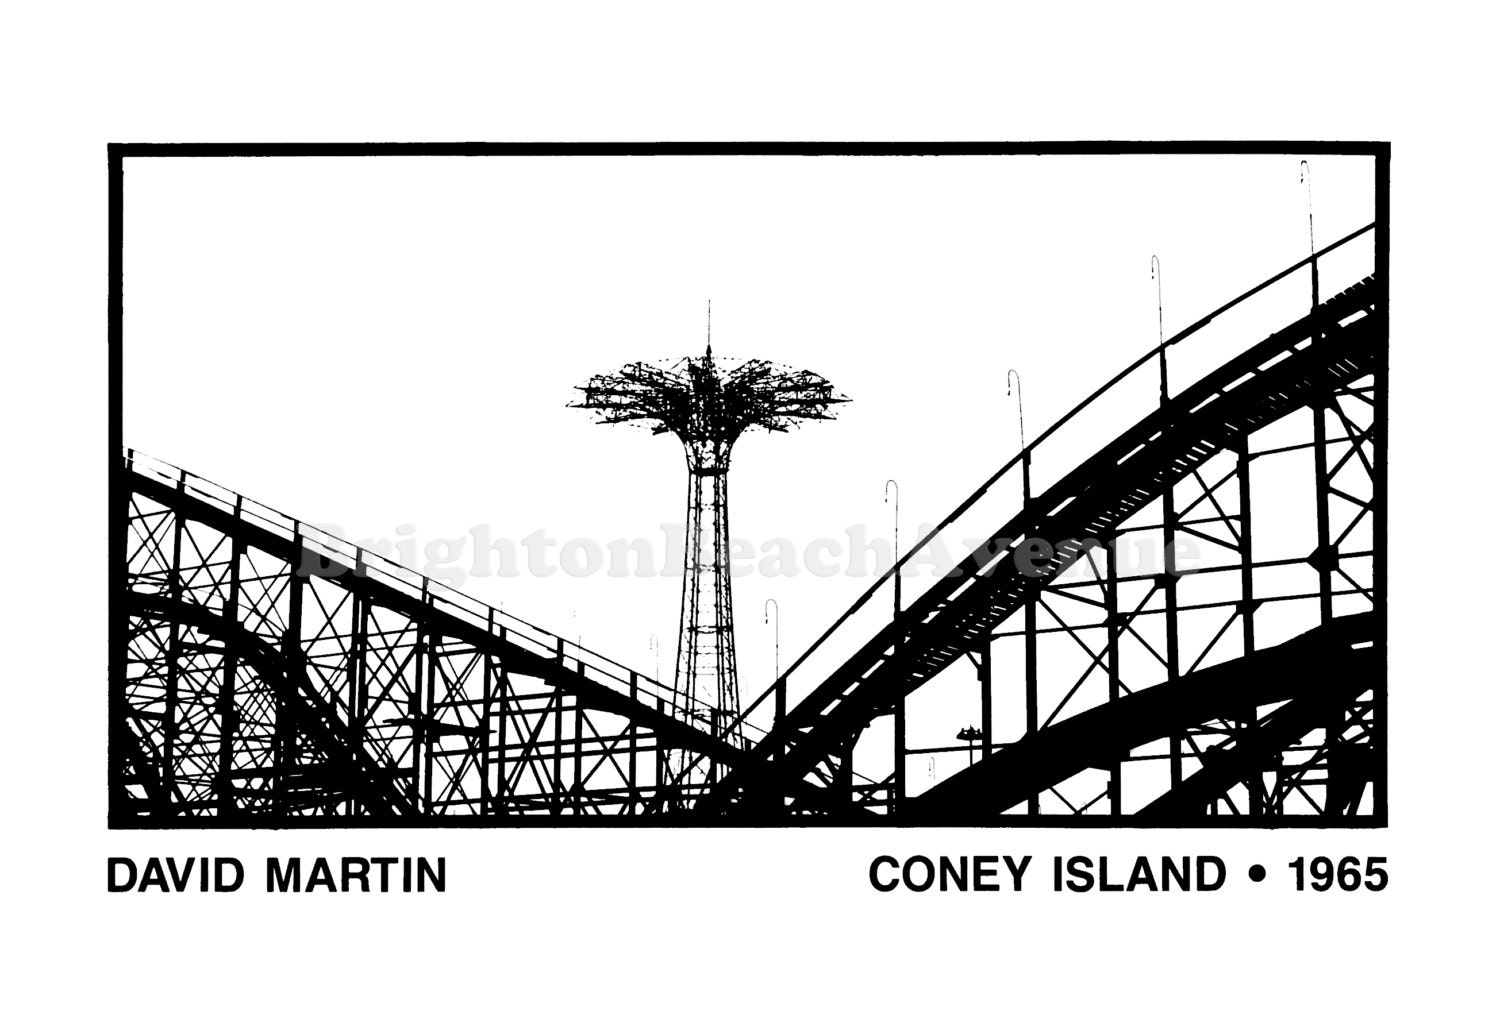 Coney Island ∘ 1965 by David Martin